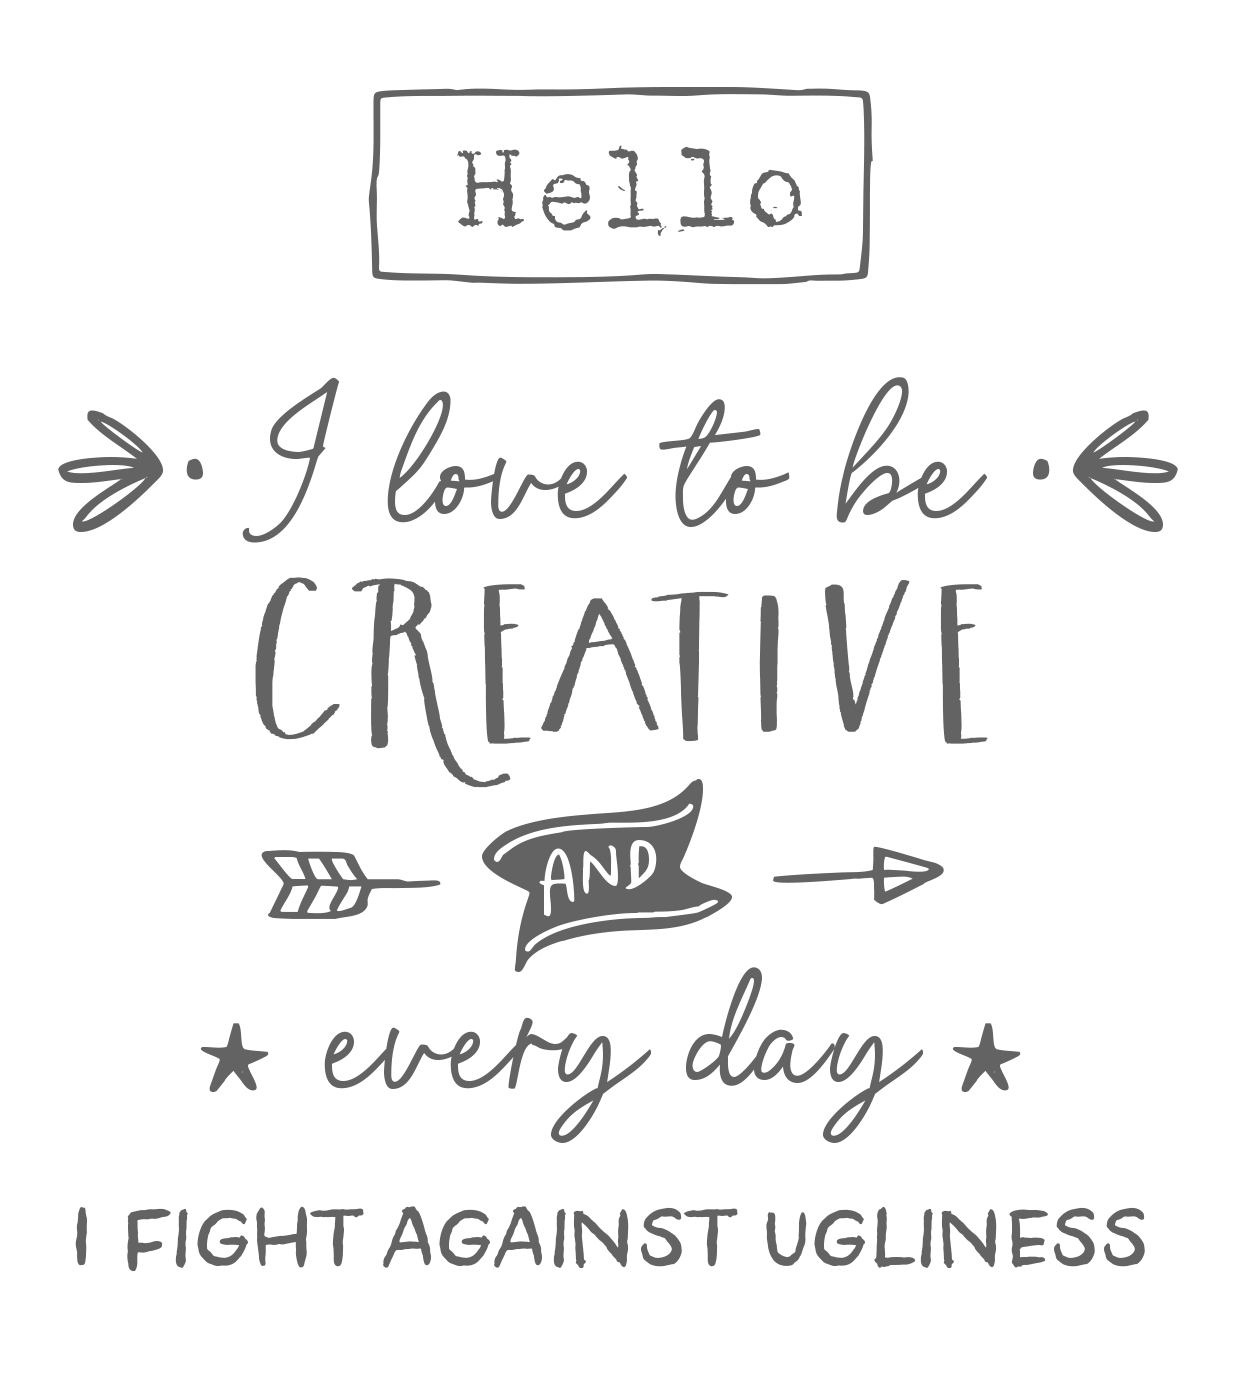 Hello, I love to be creative and every day I fight against ugliness